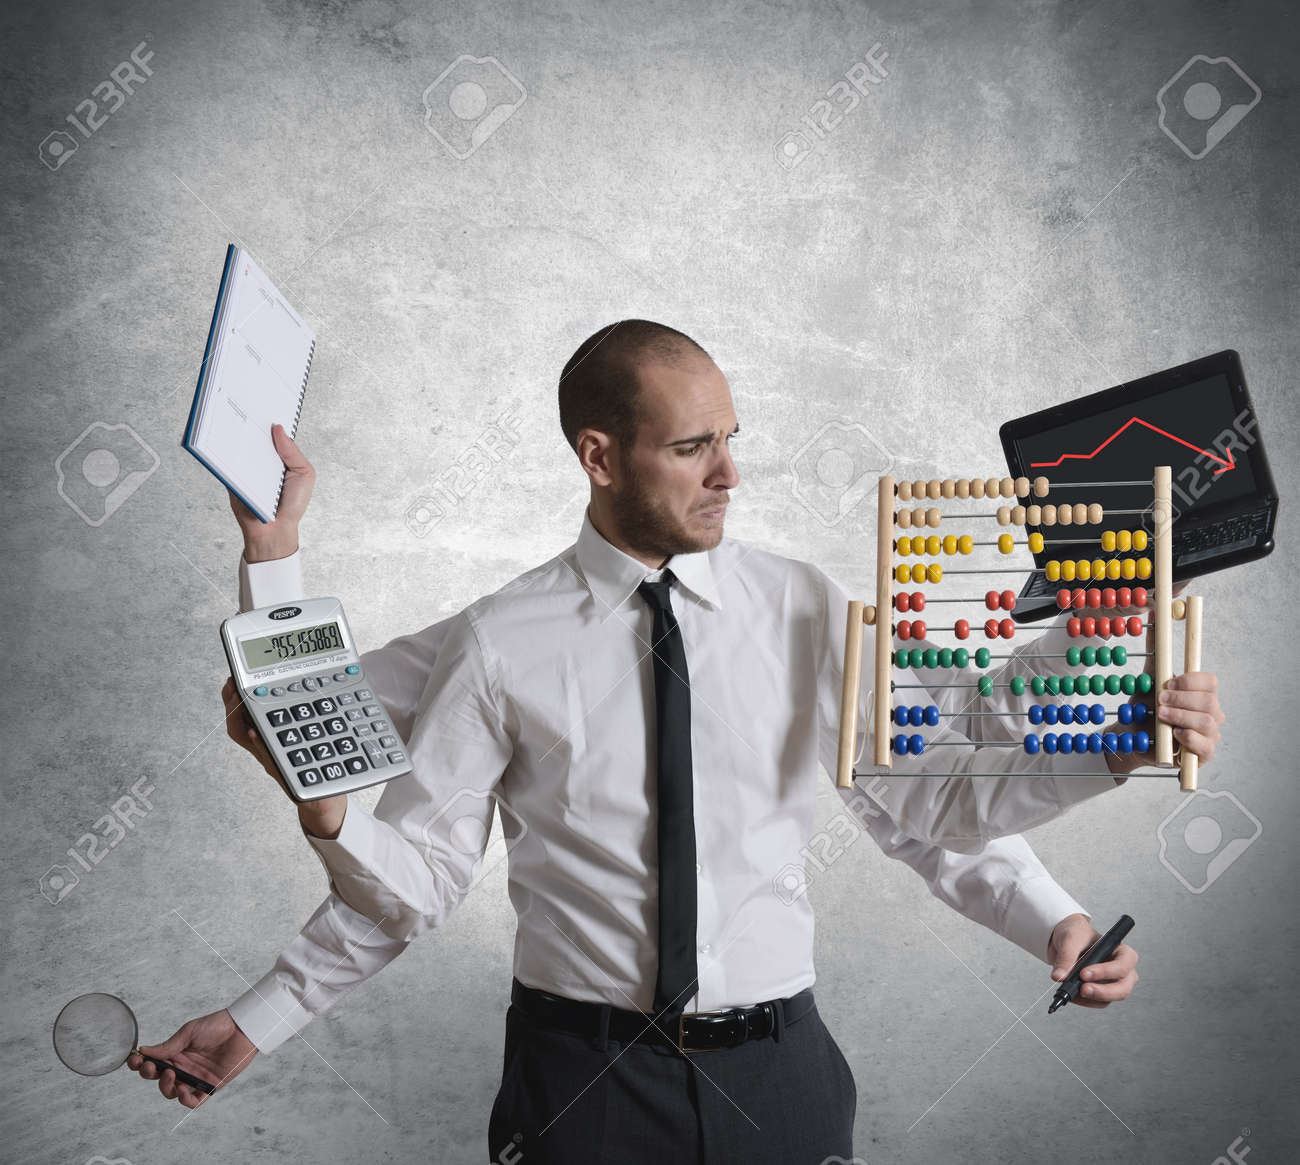 Concept of calculations and crisis Stock Photo - 16252849